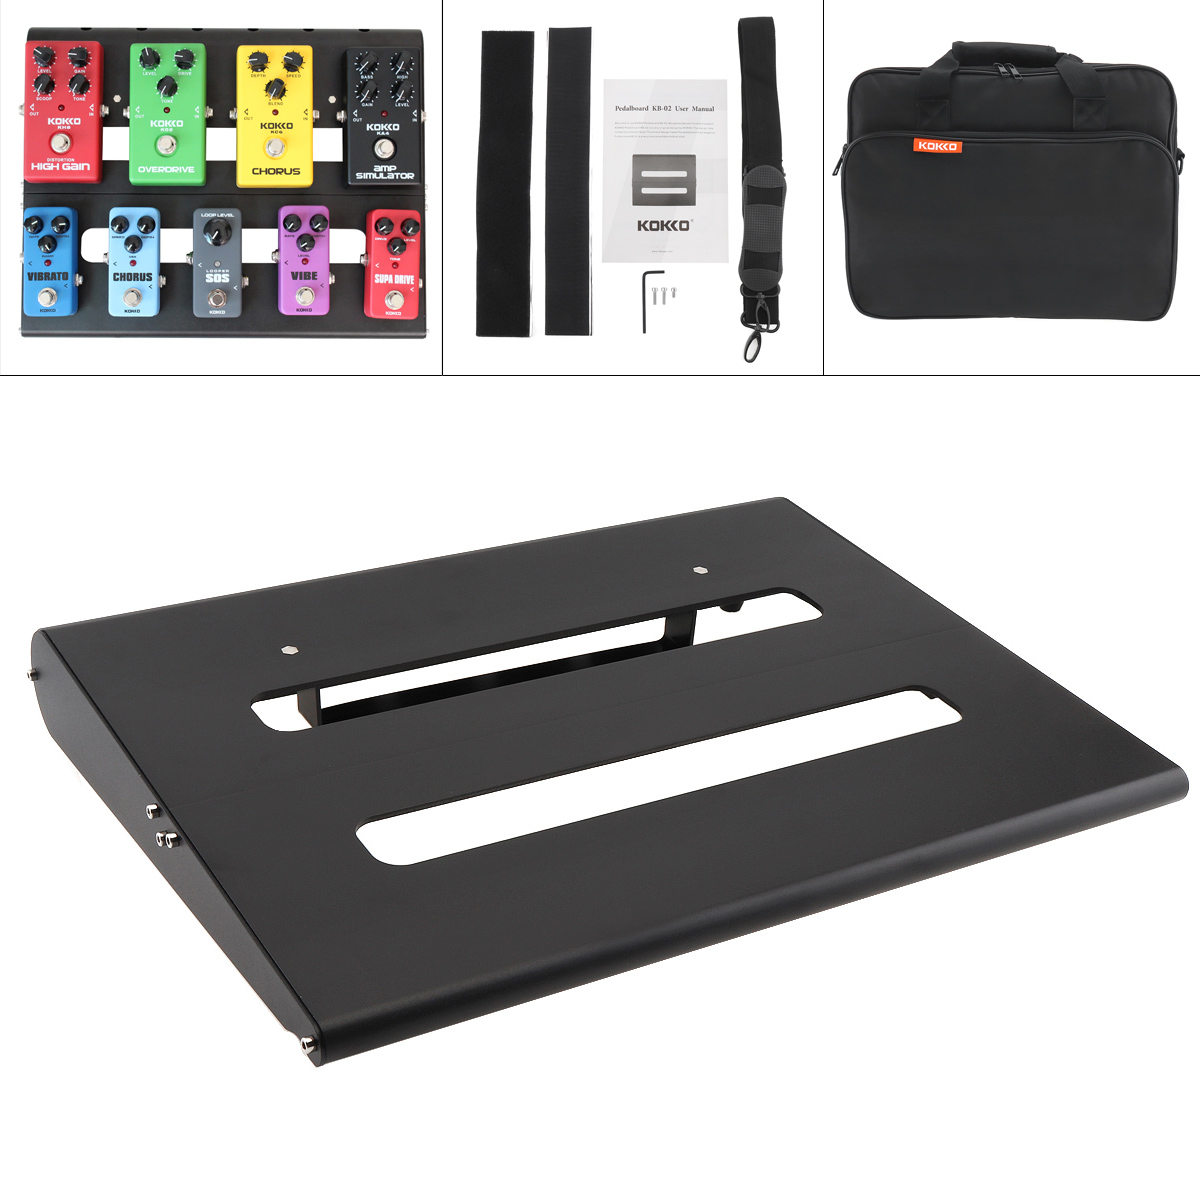 KOKKO Detachable 35 x 28cm Guitar Pedal Board Setup Style DIY Guitar Effect Pedalboard Support Placed